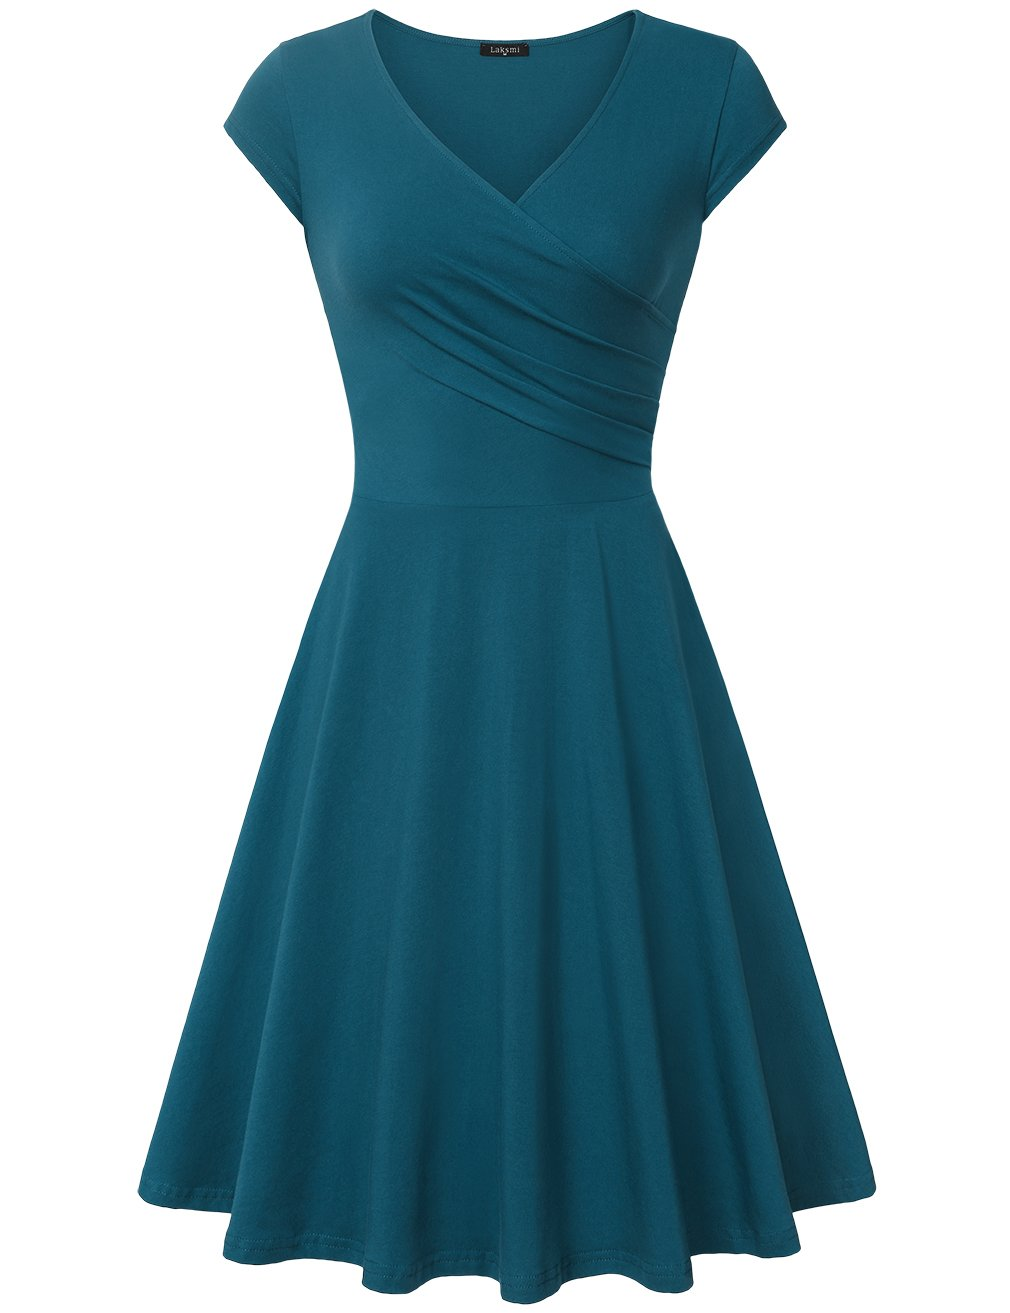 Laksmi Women's v-Neck Solid Short-Sleeve Knee Fit-and-Flare Dress, Dark Cyan, XX-Large